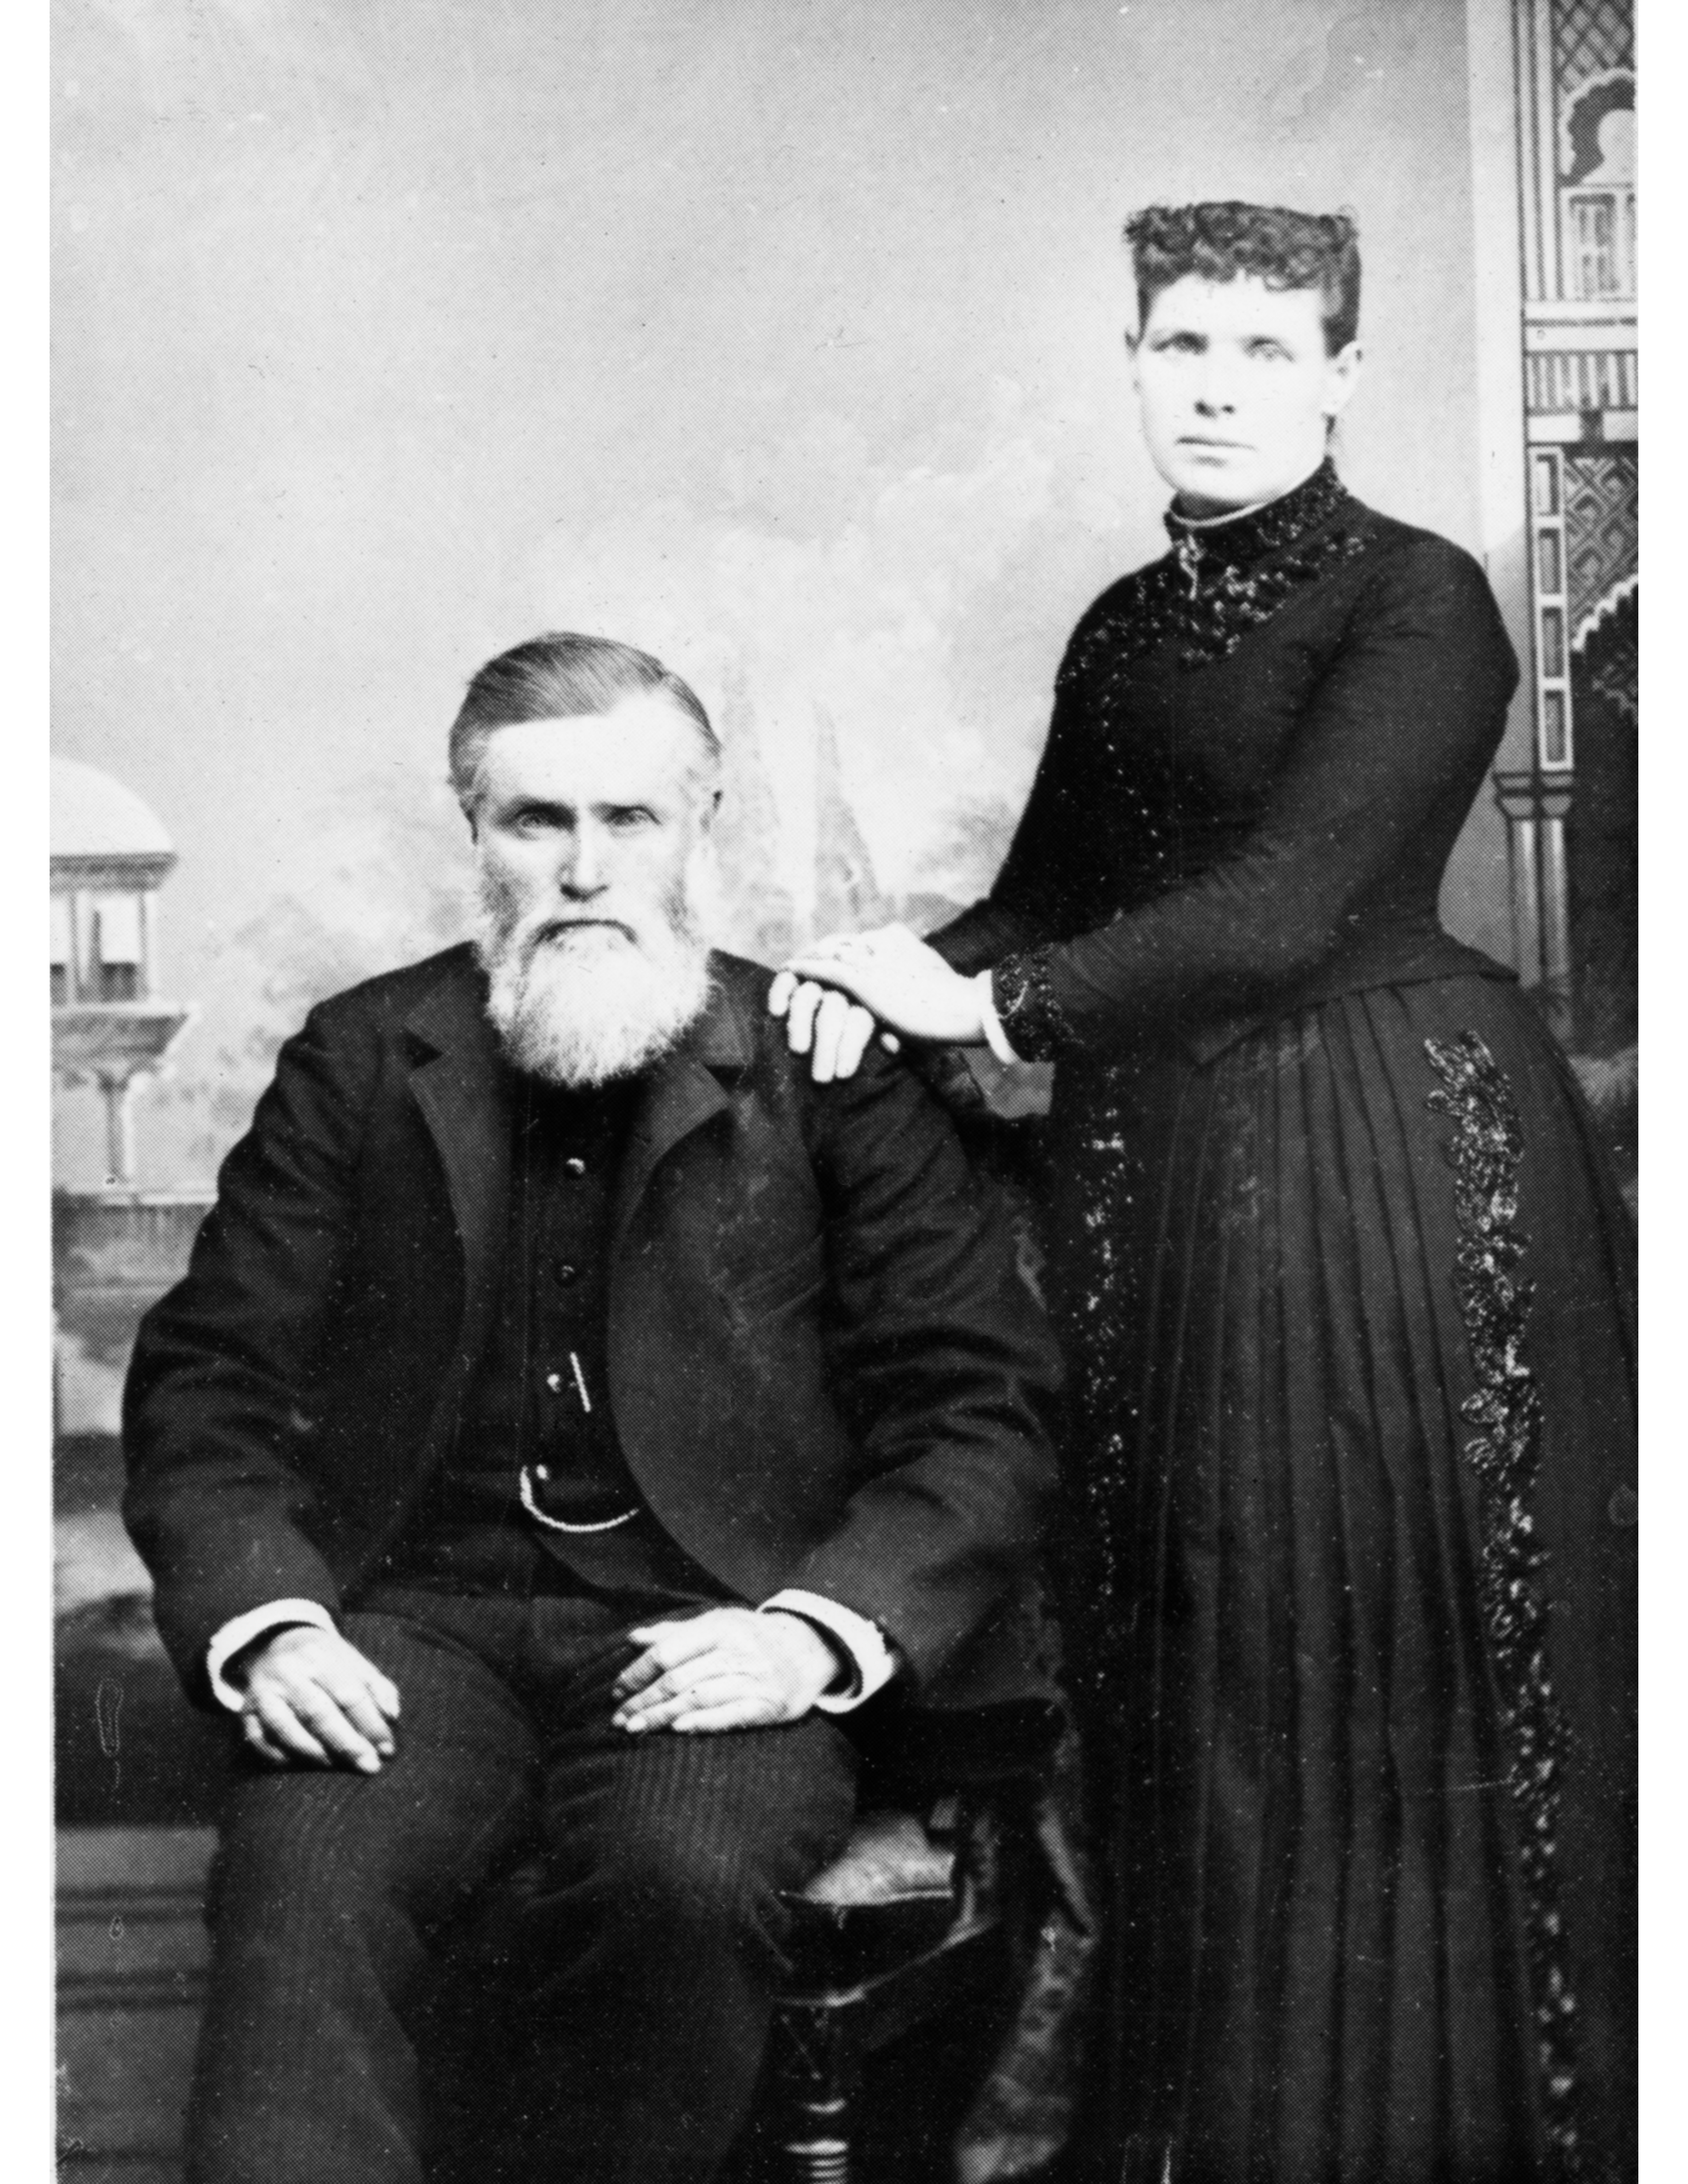 Samuel and Elizabeth Brantner